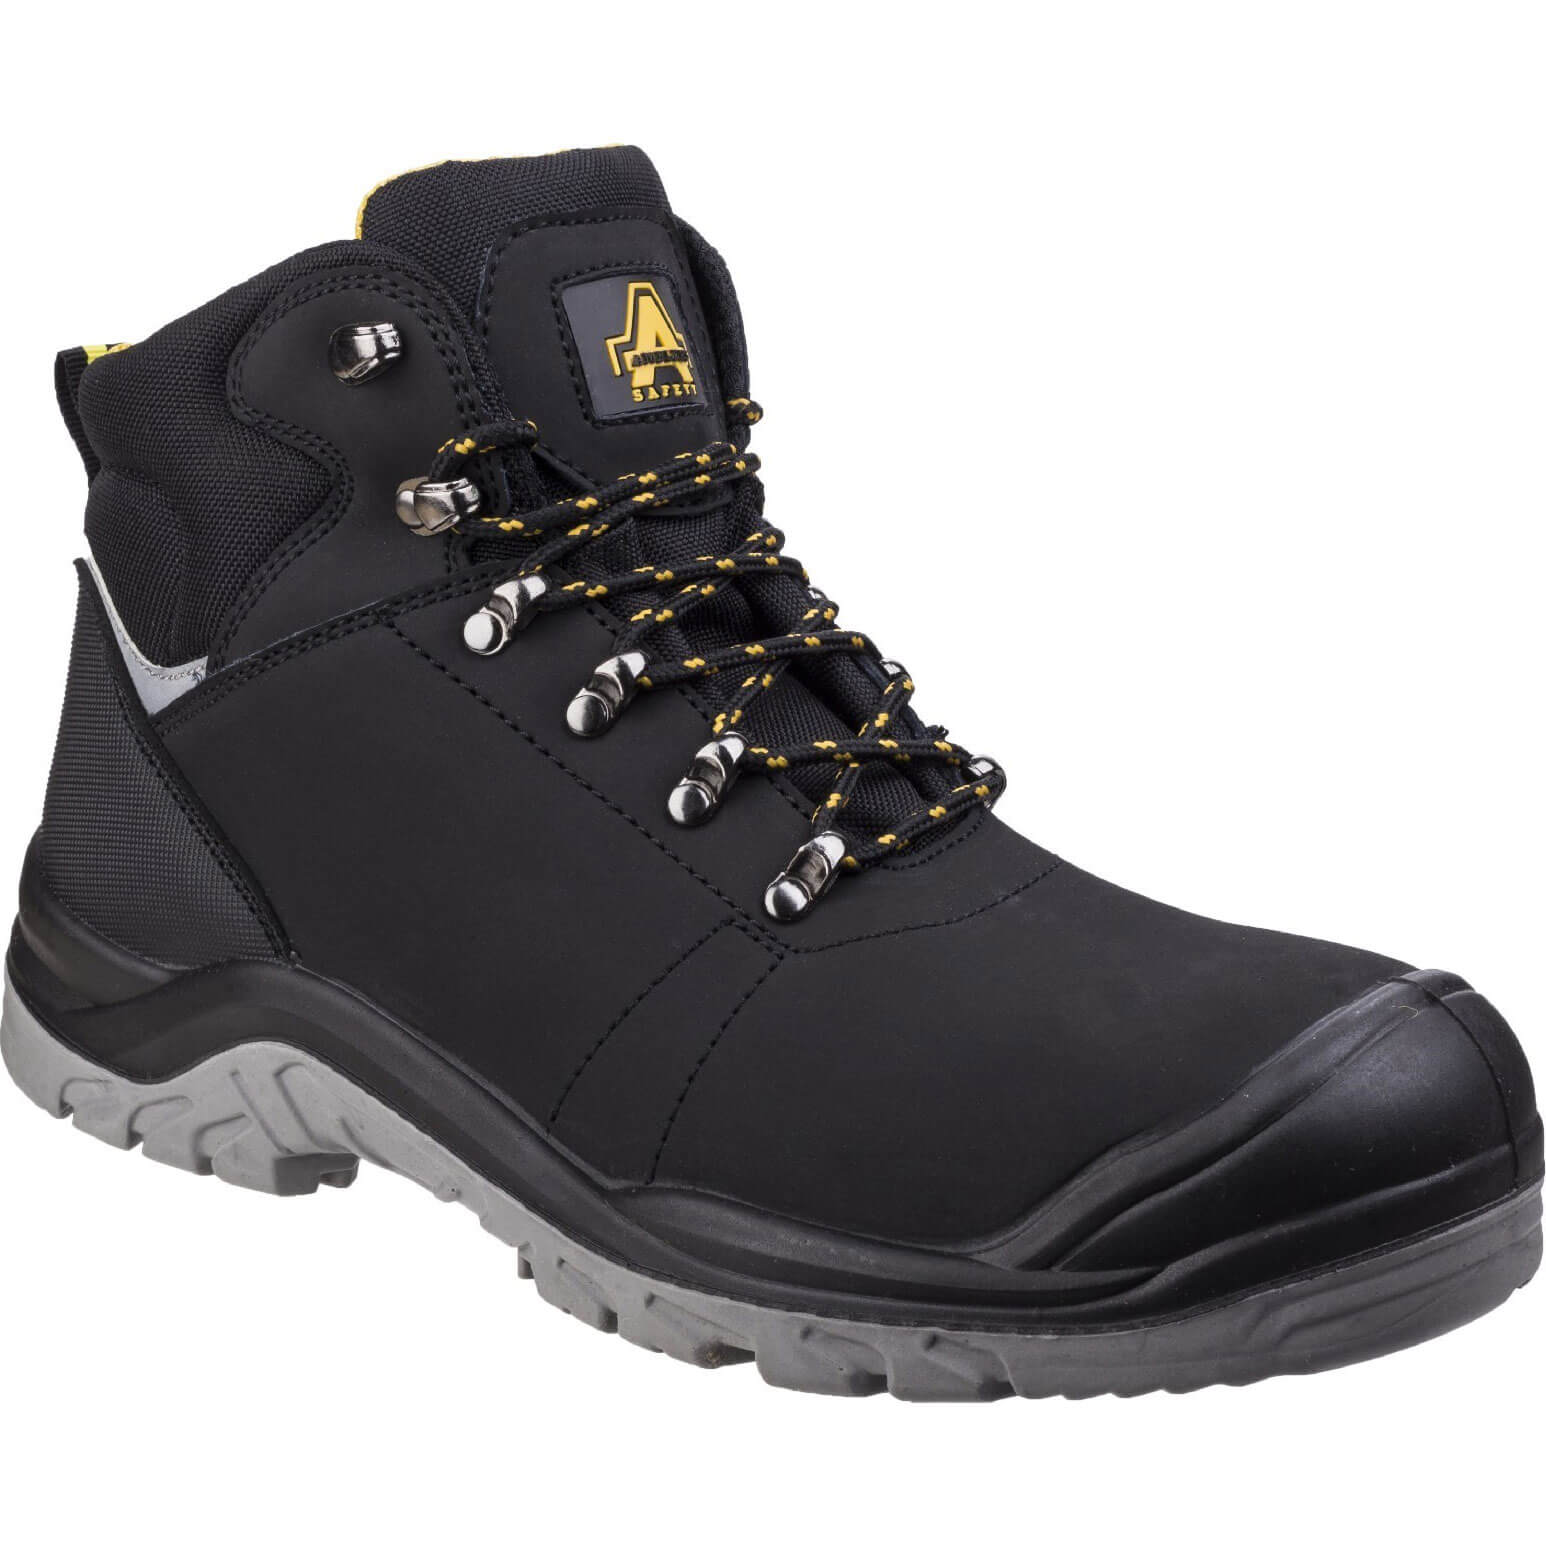 CHEAP Amblers Mens Safety As252 Lightweight Water Resistant Leather Safety Boots Black Size 5 – Men's Footwear